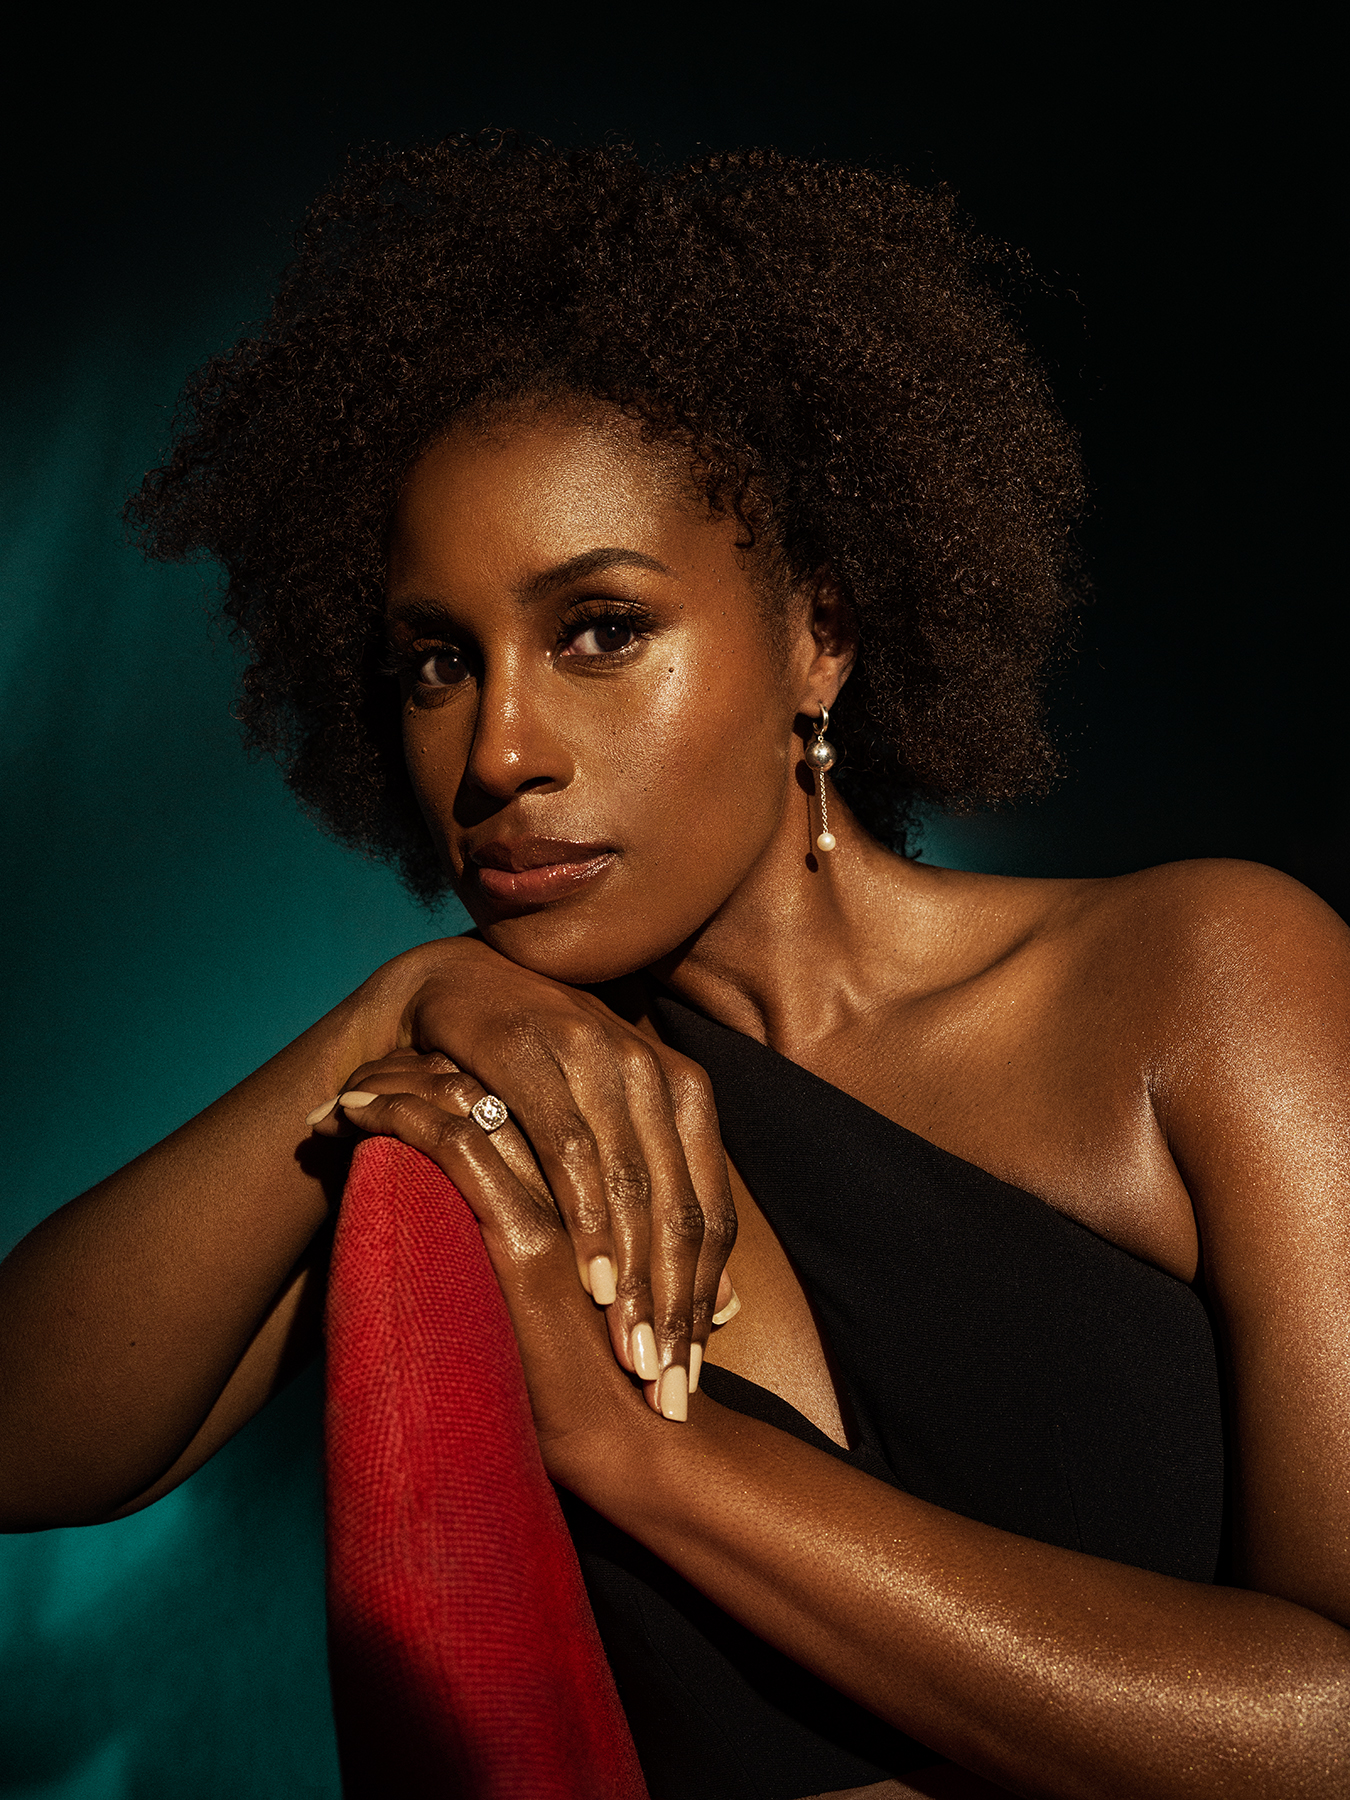 Issa Rae, photographed in Los Angeles on March 14th, 2021.